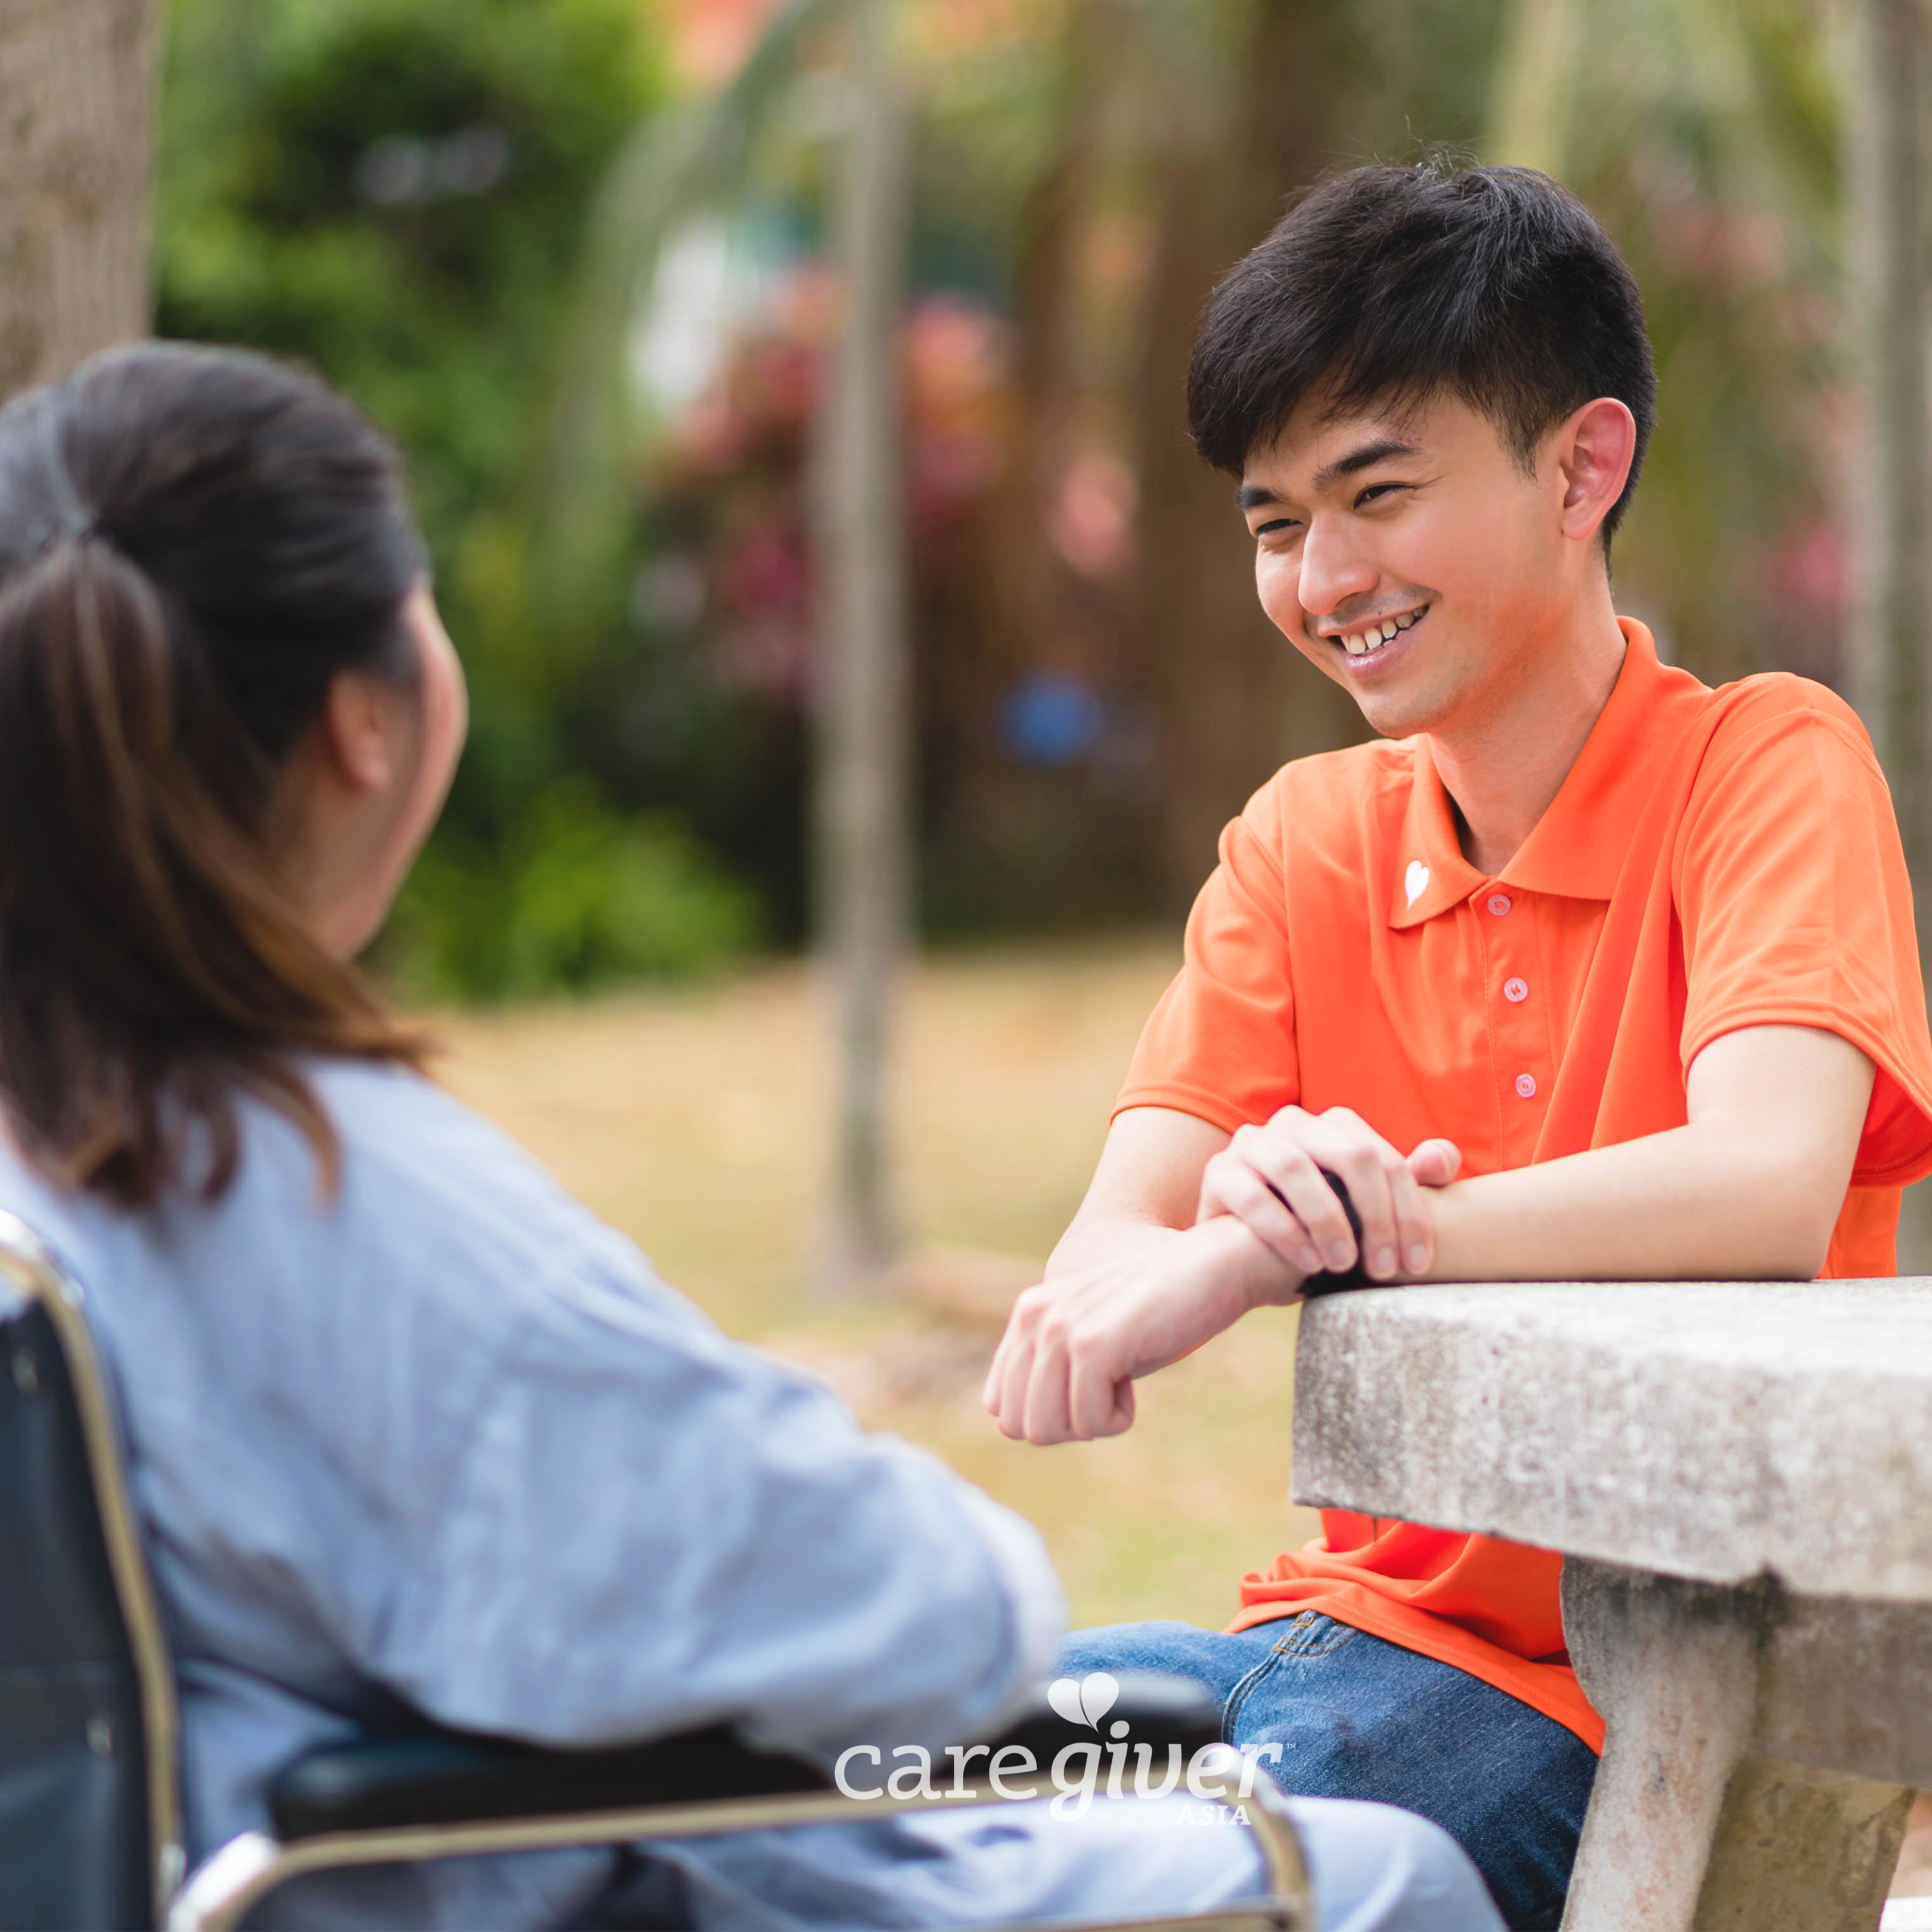 Freelance Caregivers practice on their own terms at CaregiverAsia